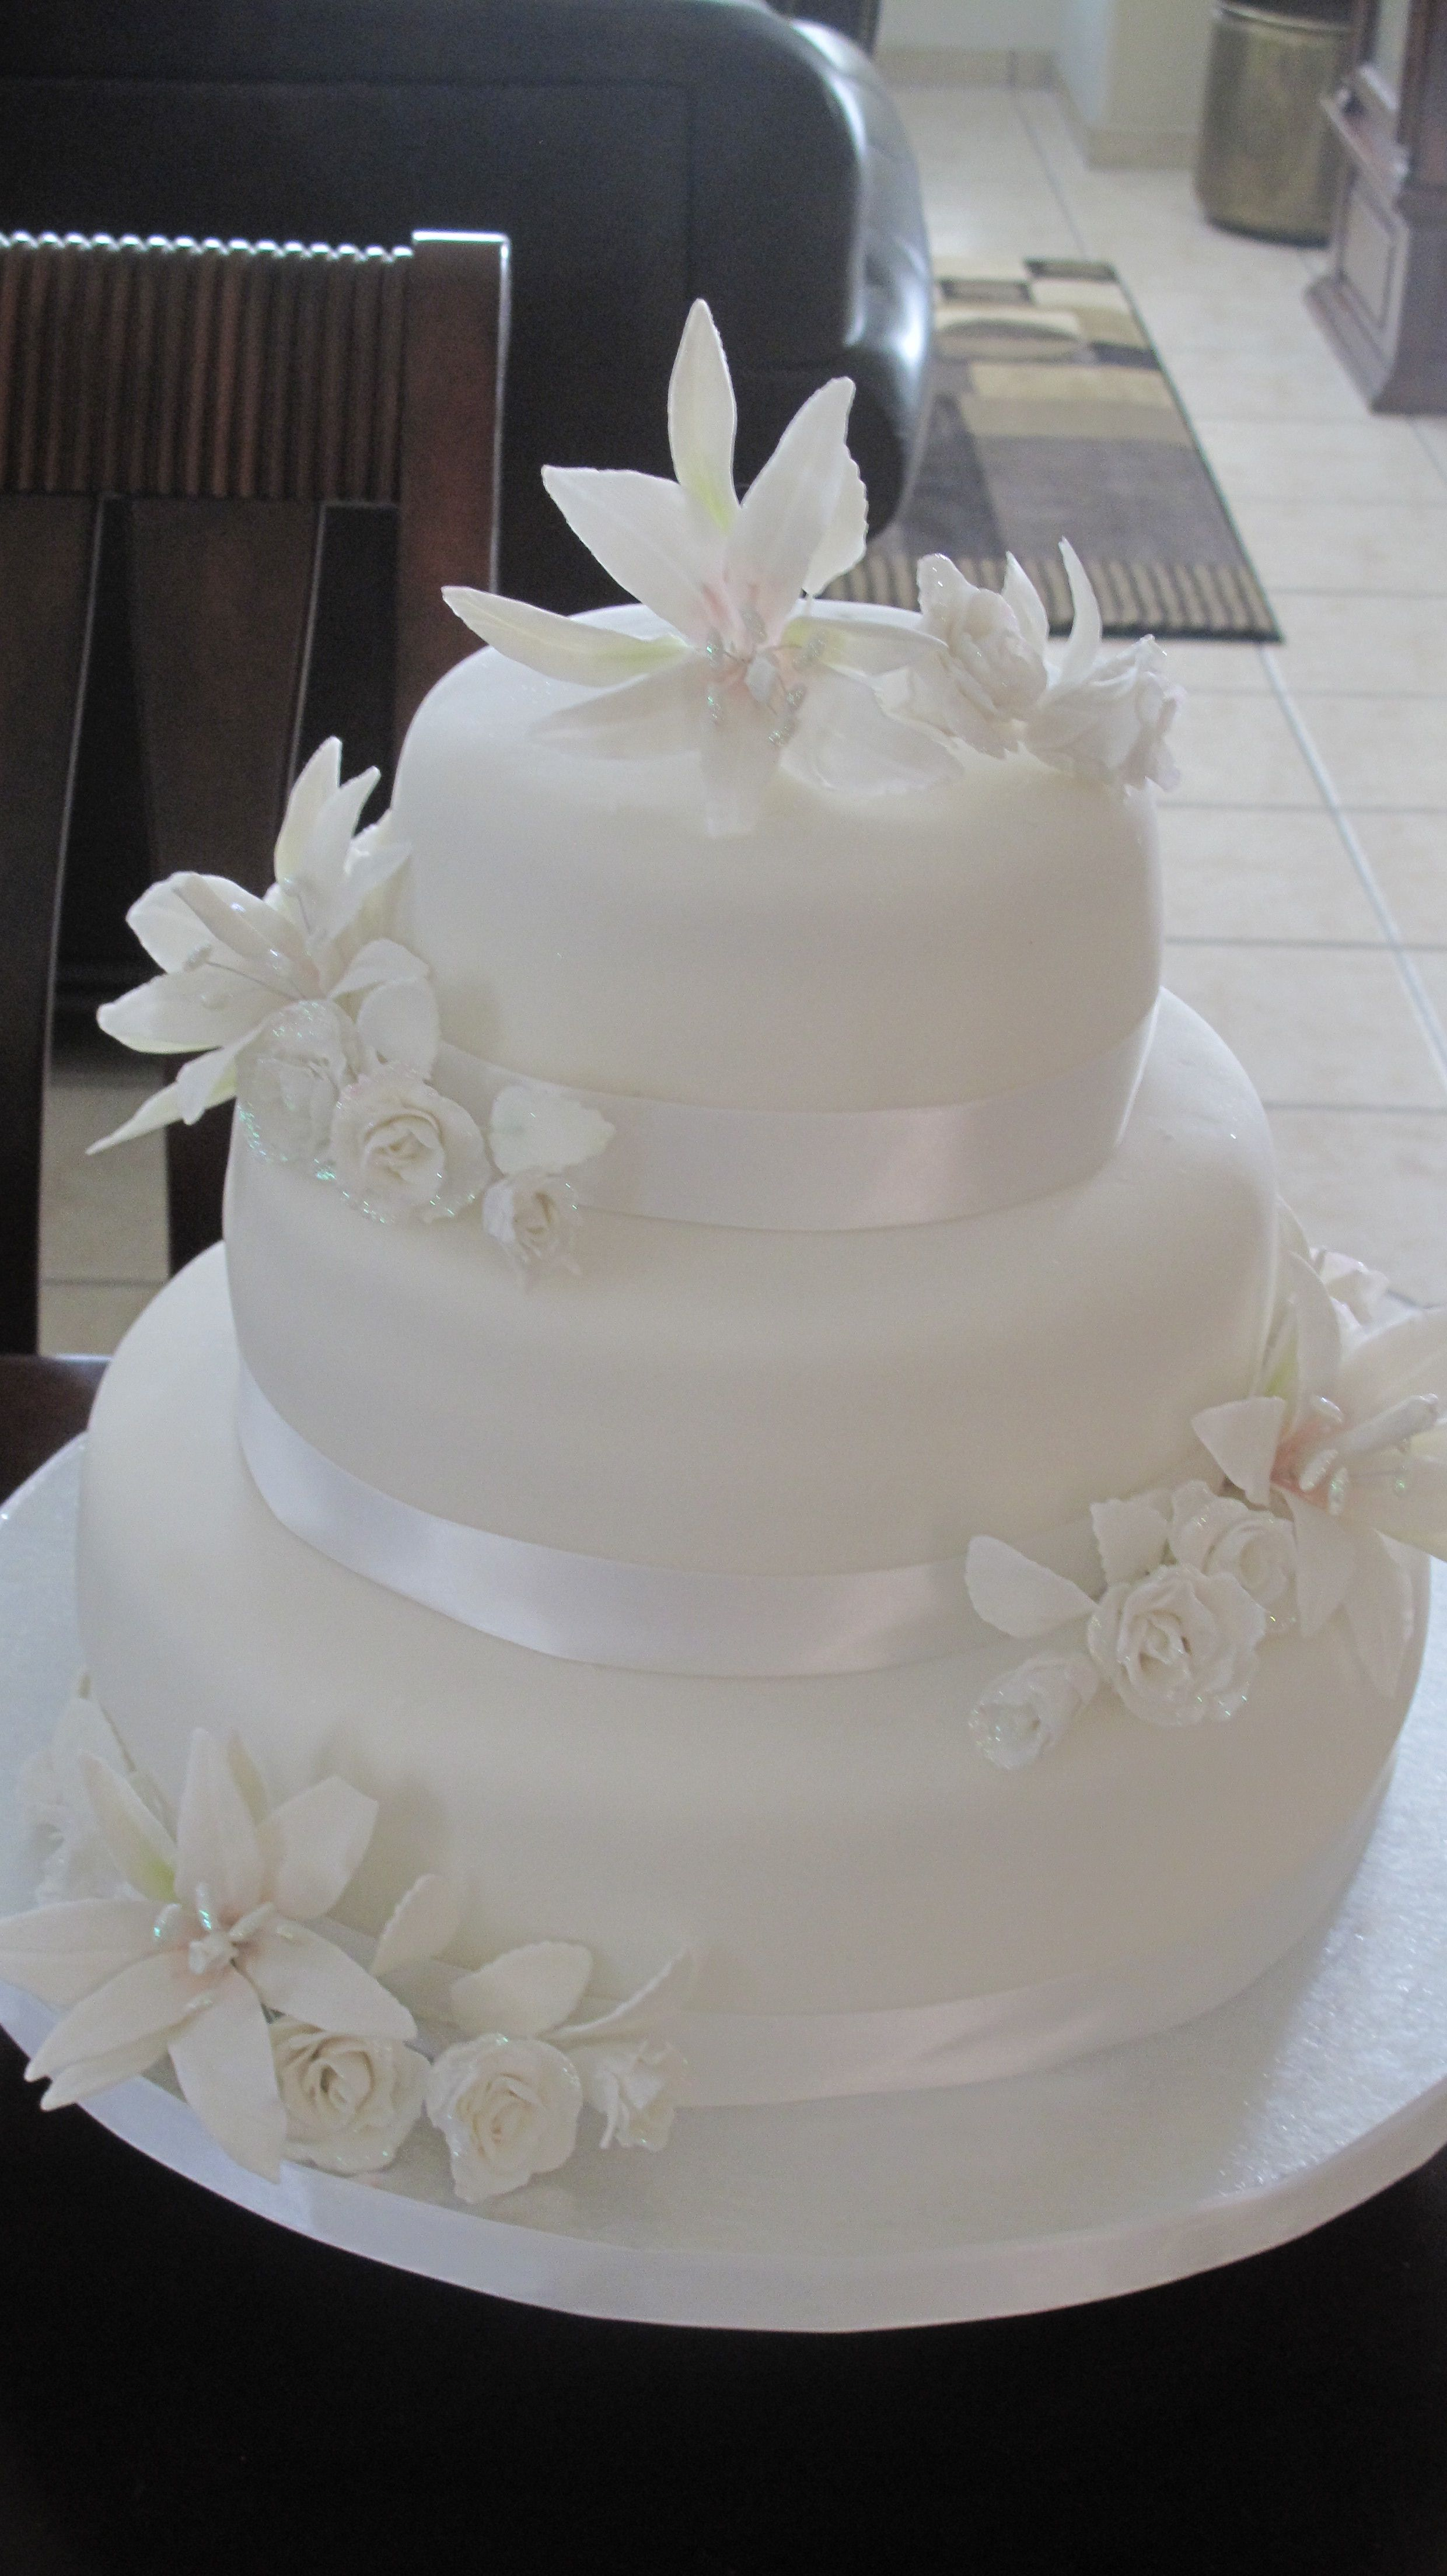 An anniversary cake adorned with gumpaste lilies roses and satin